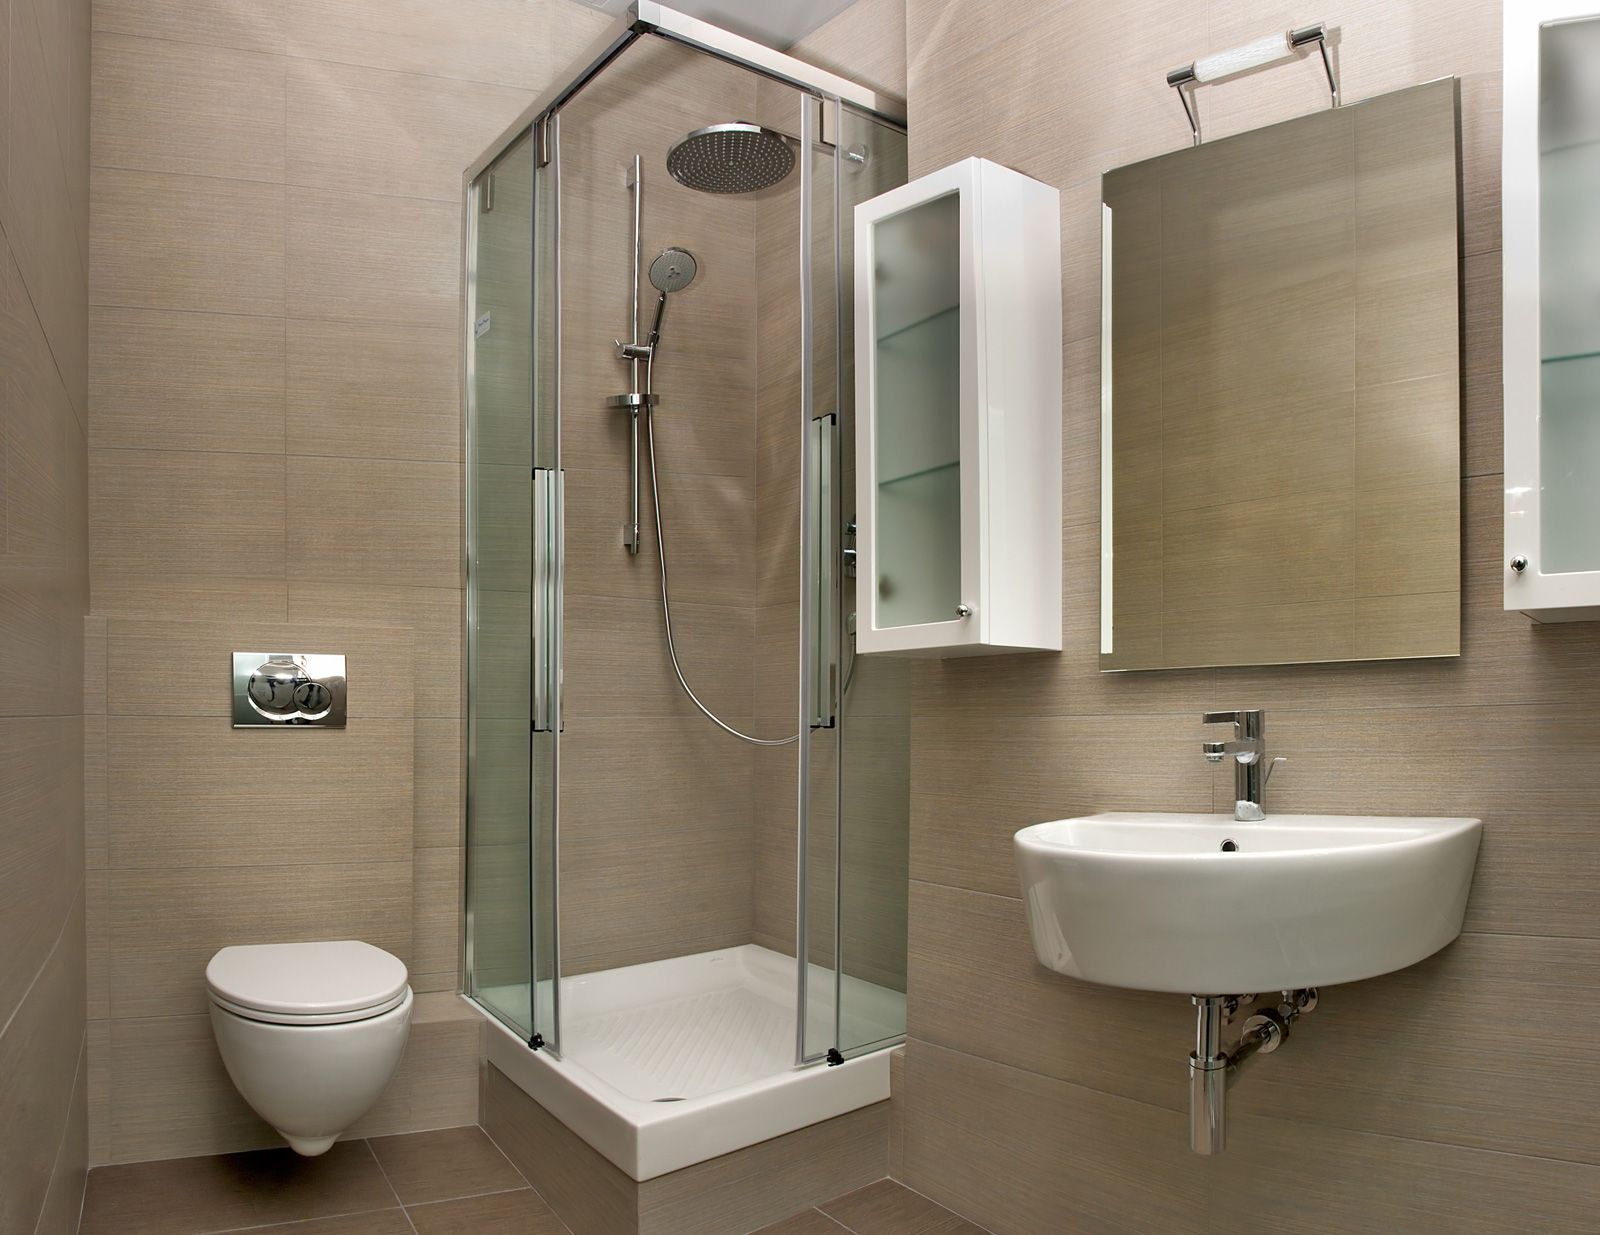 Small Bathroom Options shower ideas for small bathroom to inspire you on how to decorate